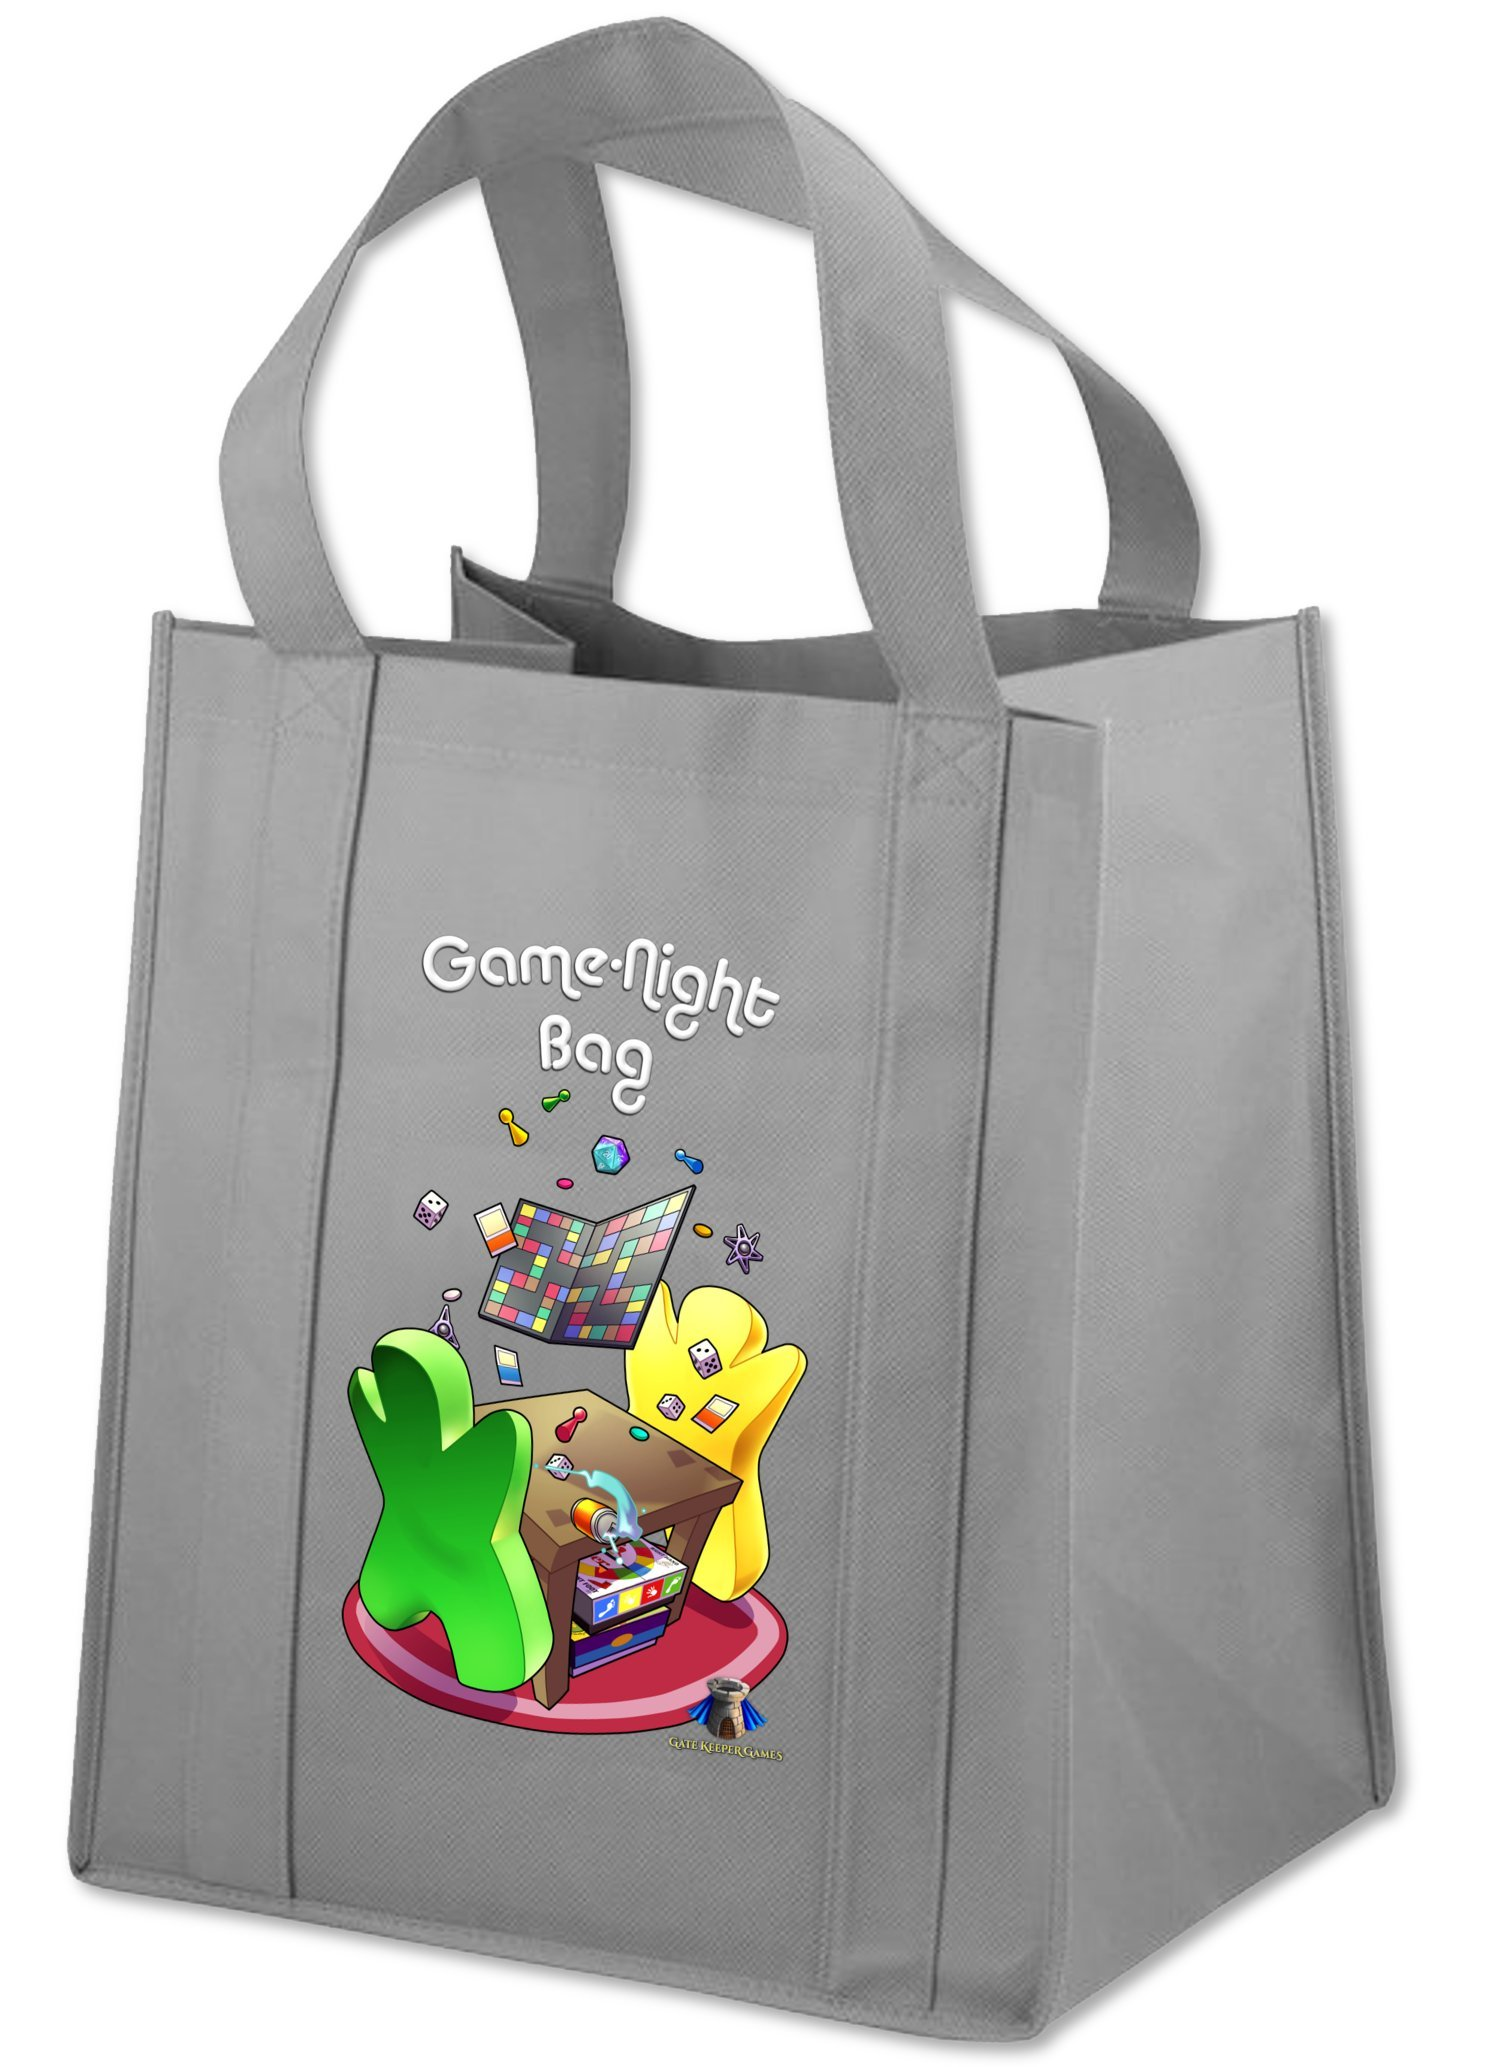 Game Night Bag ''The Classic'' - 15x13x10'' Tote Bag w/ Reinforced Base & Handles - Carries up to 40lbs